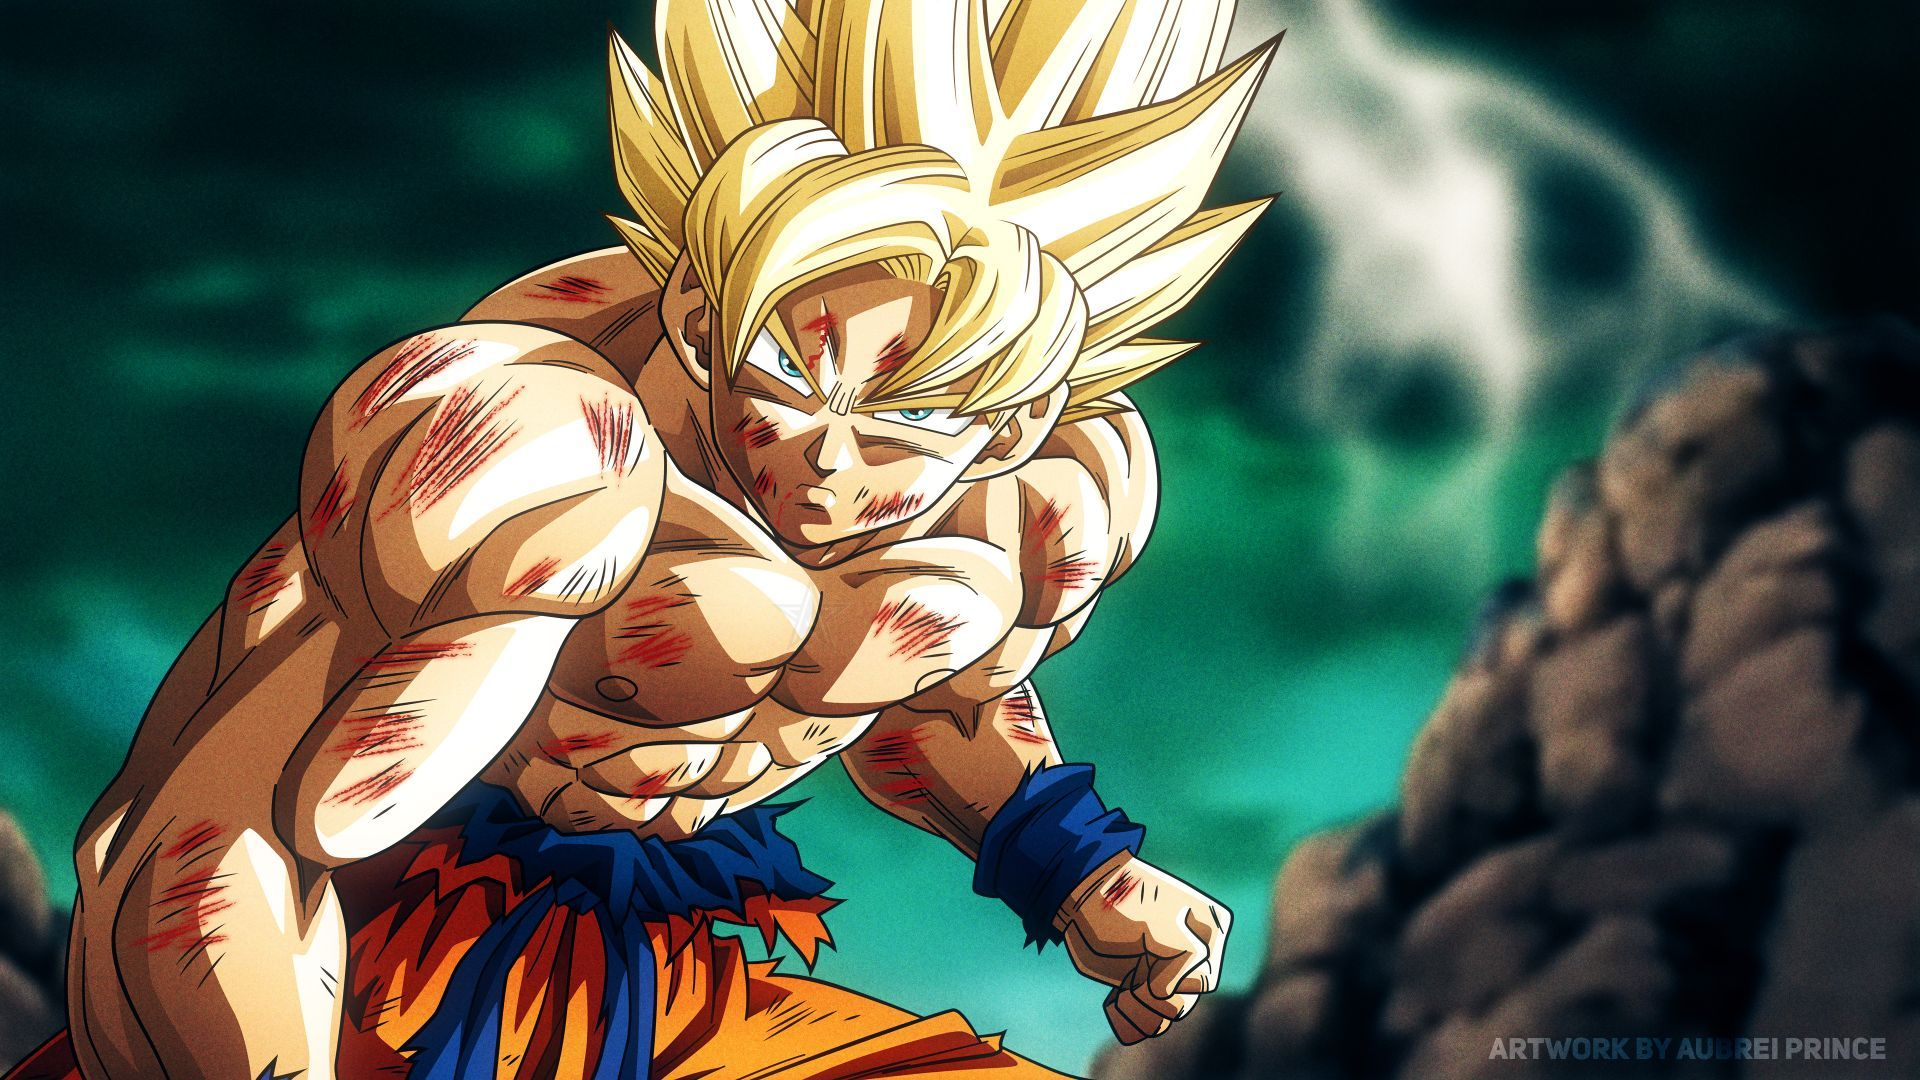 Download Wallpapers Of Goku Super Saiyan Dragon Ball Super 4k Anime 13356 Available In Hd 4k Resolutions For Desktop Mo Anime Anime Echii Manga Anime